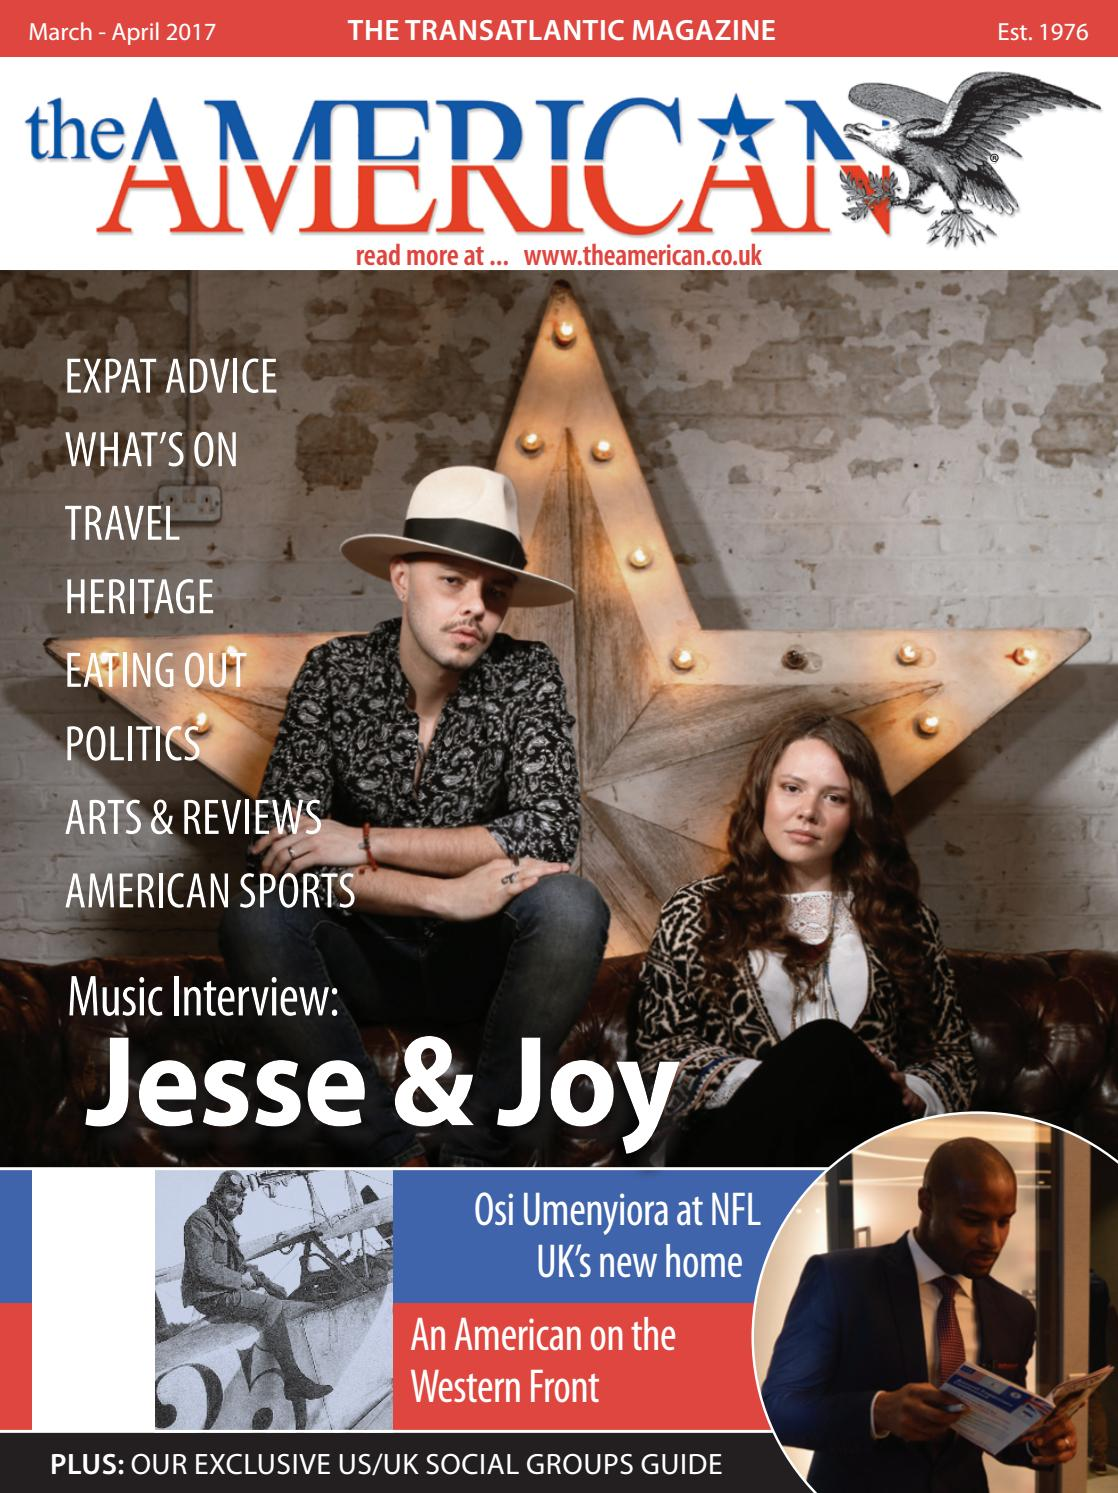 The American November December 2016 Issue 754ine 756 Mar17 By Blue Images, Photos, Reviews